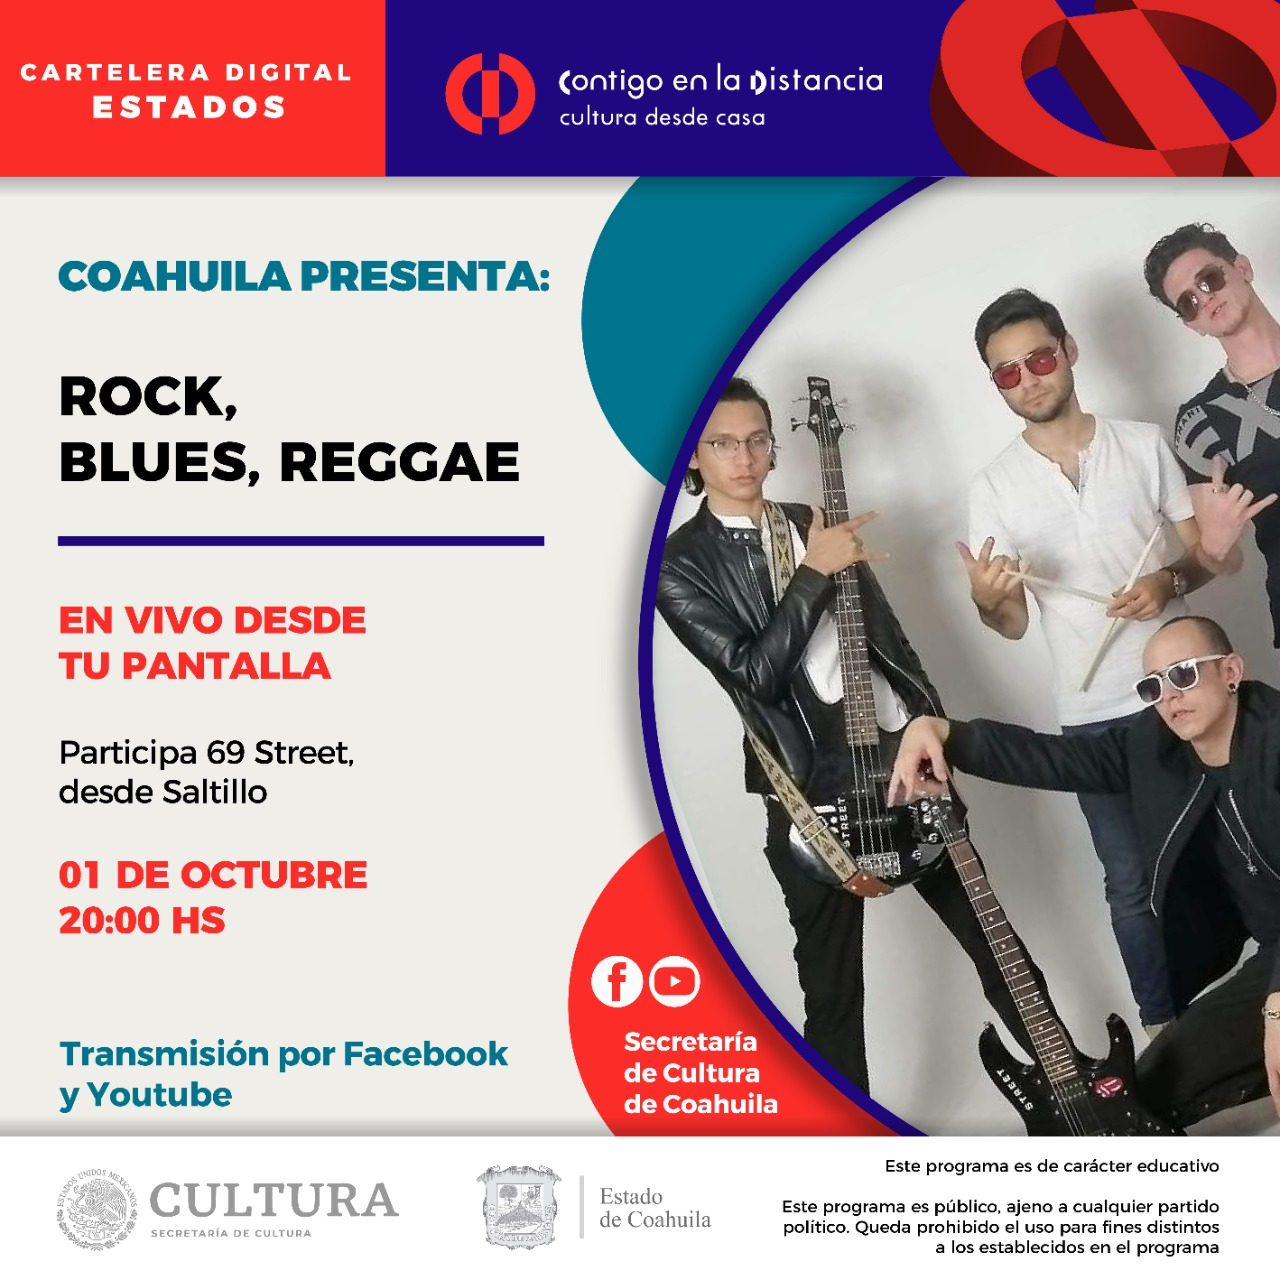 Coahuila presenta: Rock, Blues y Reggae